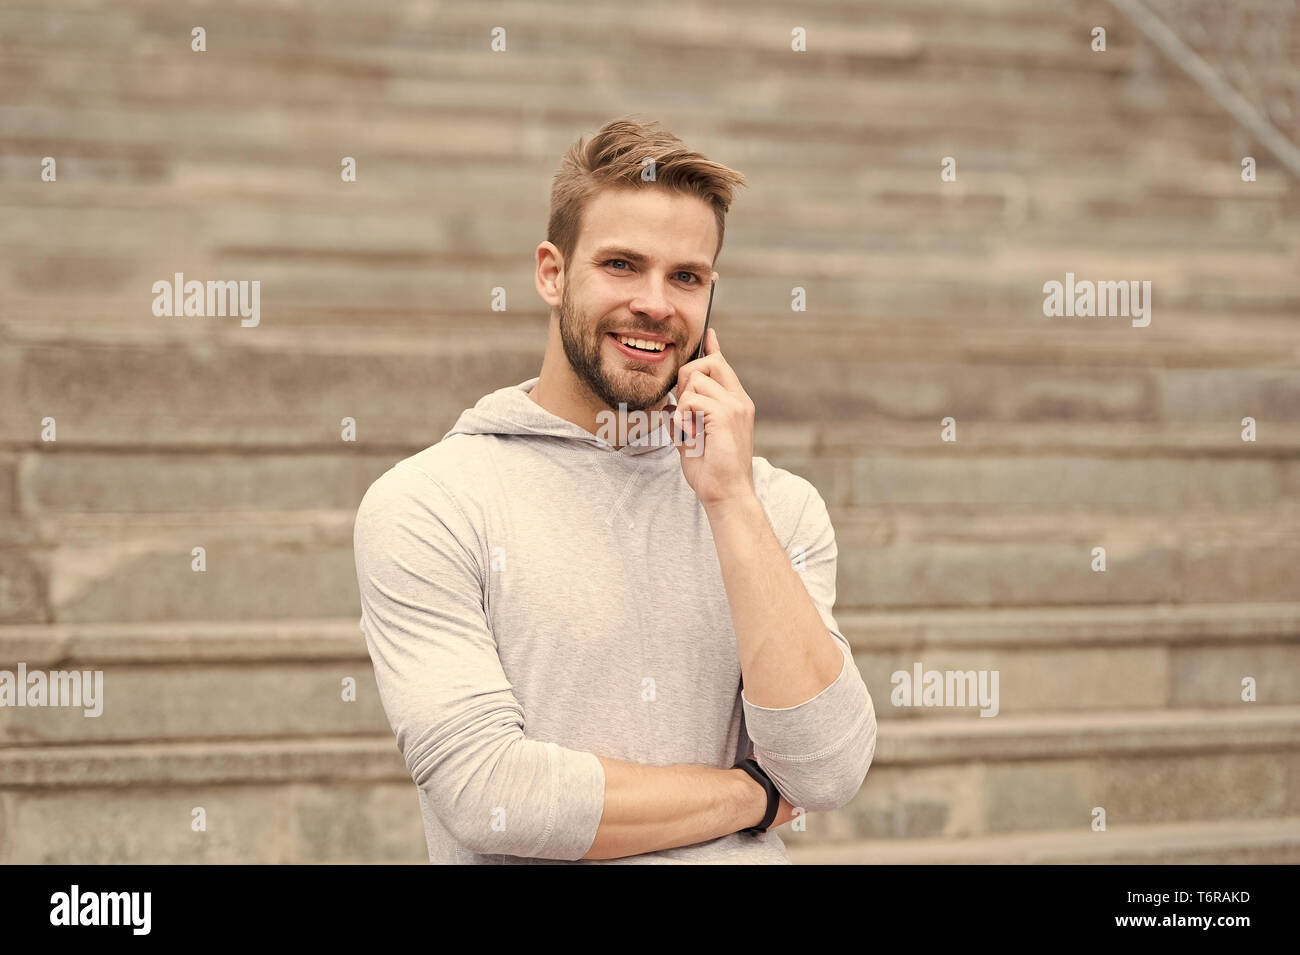 Keep in touch. Man bearded walks with smartphone, urban background with stairs. Man pleasant smiling face speaks on smartphone. Guy pleased answer call on smartphone. Pleasant conversation. - Stock Image